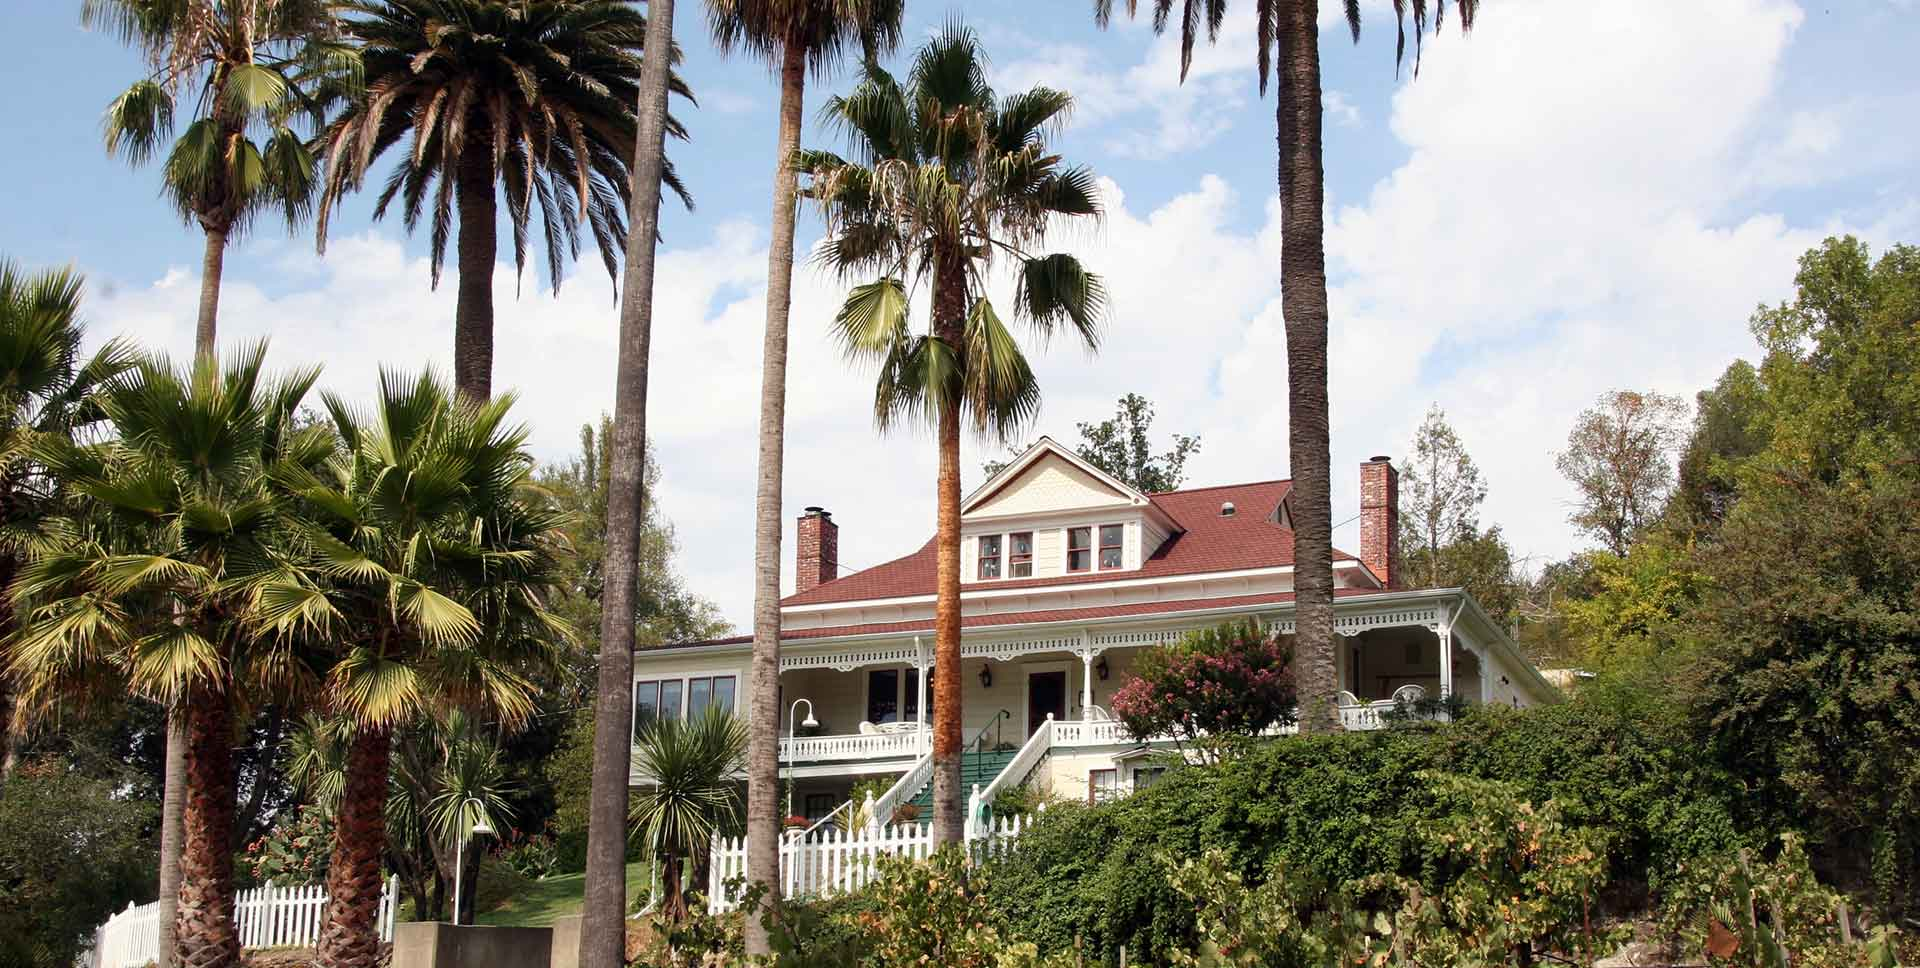 15 Unique Inns And Bed And Breakfasts In Wine Country Sonomacounty Com